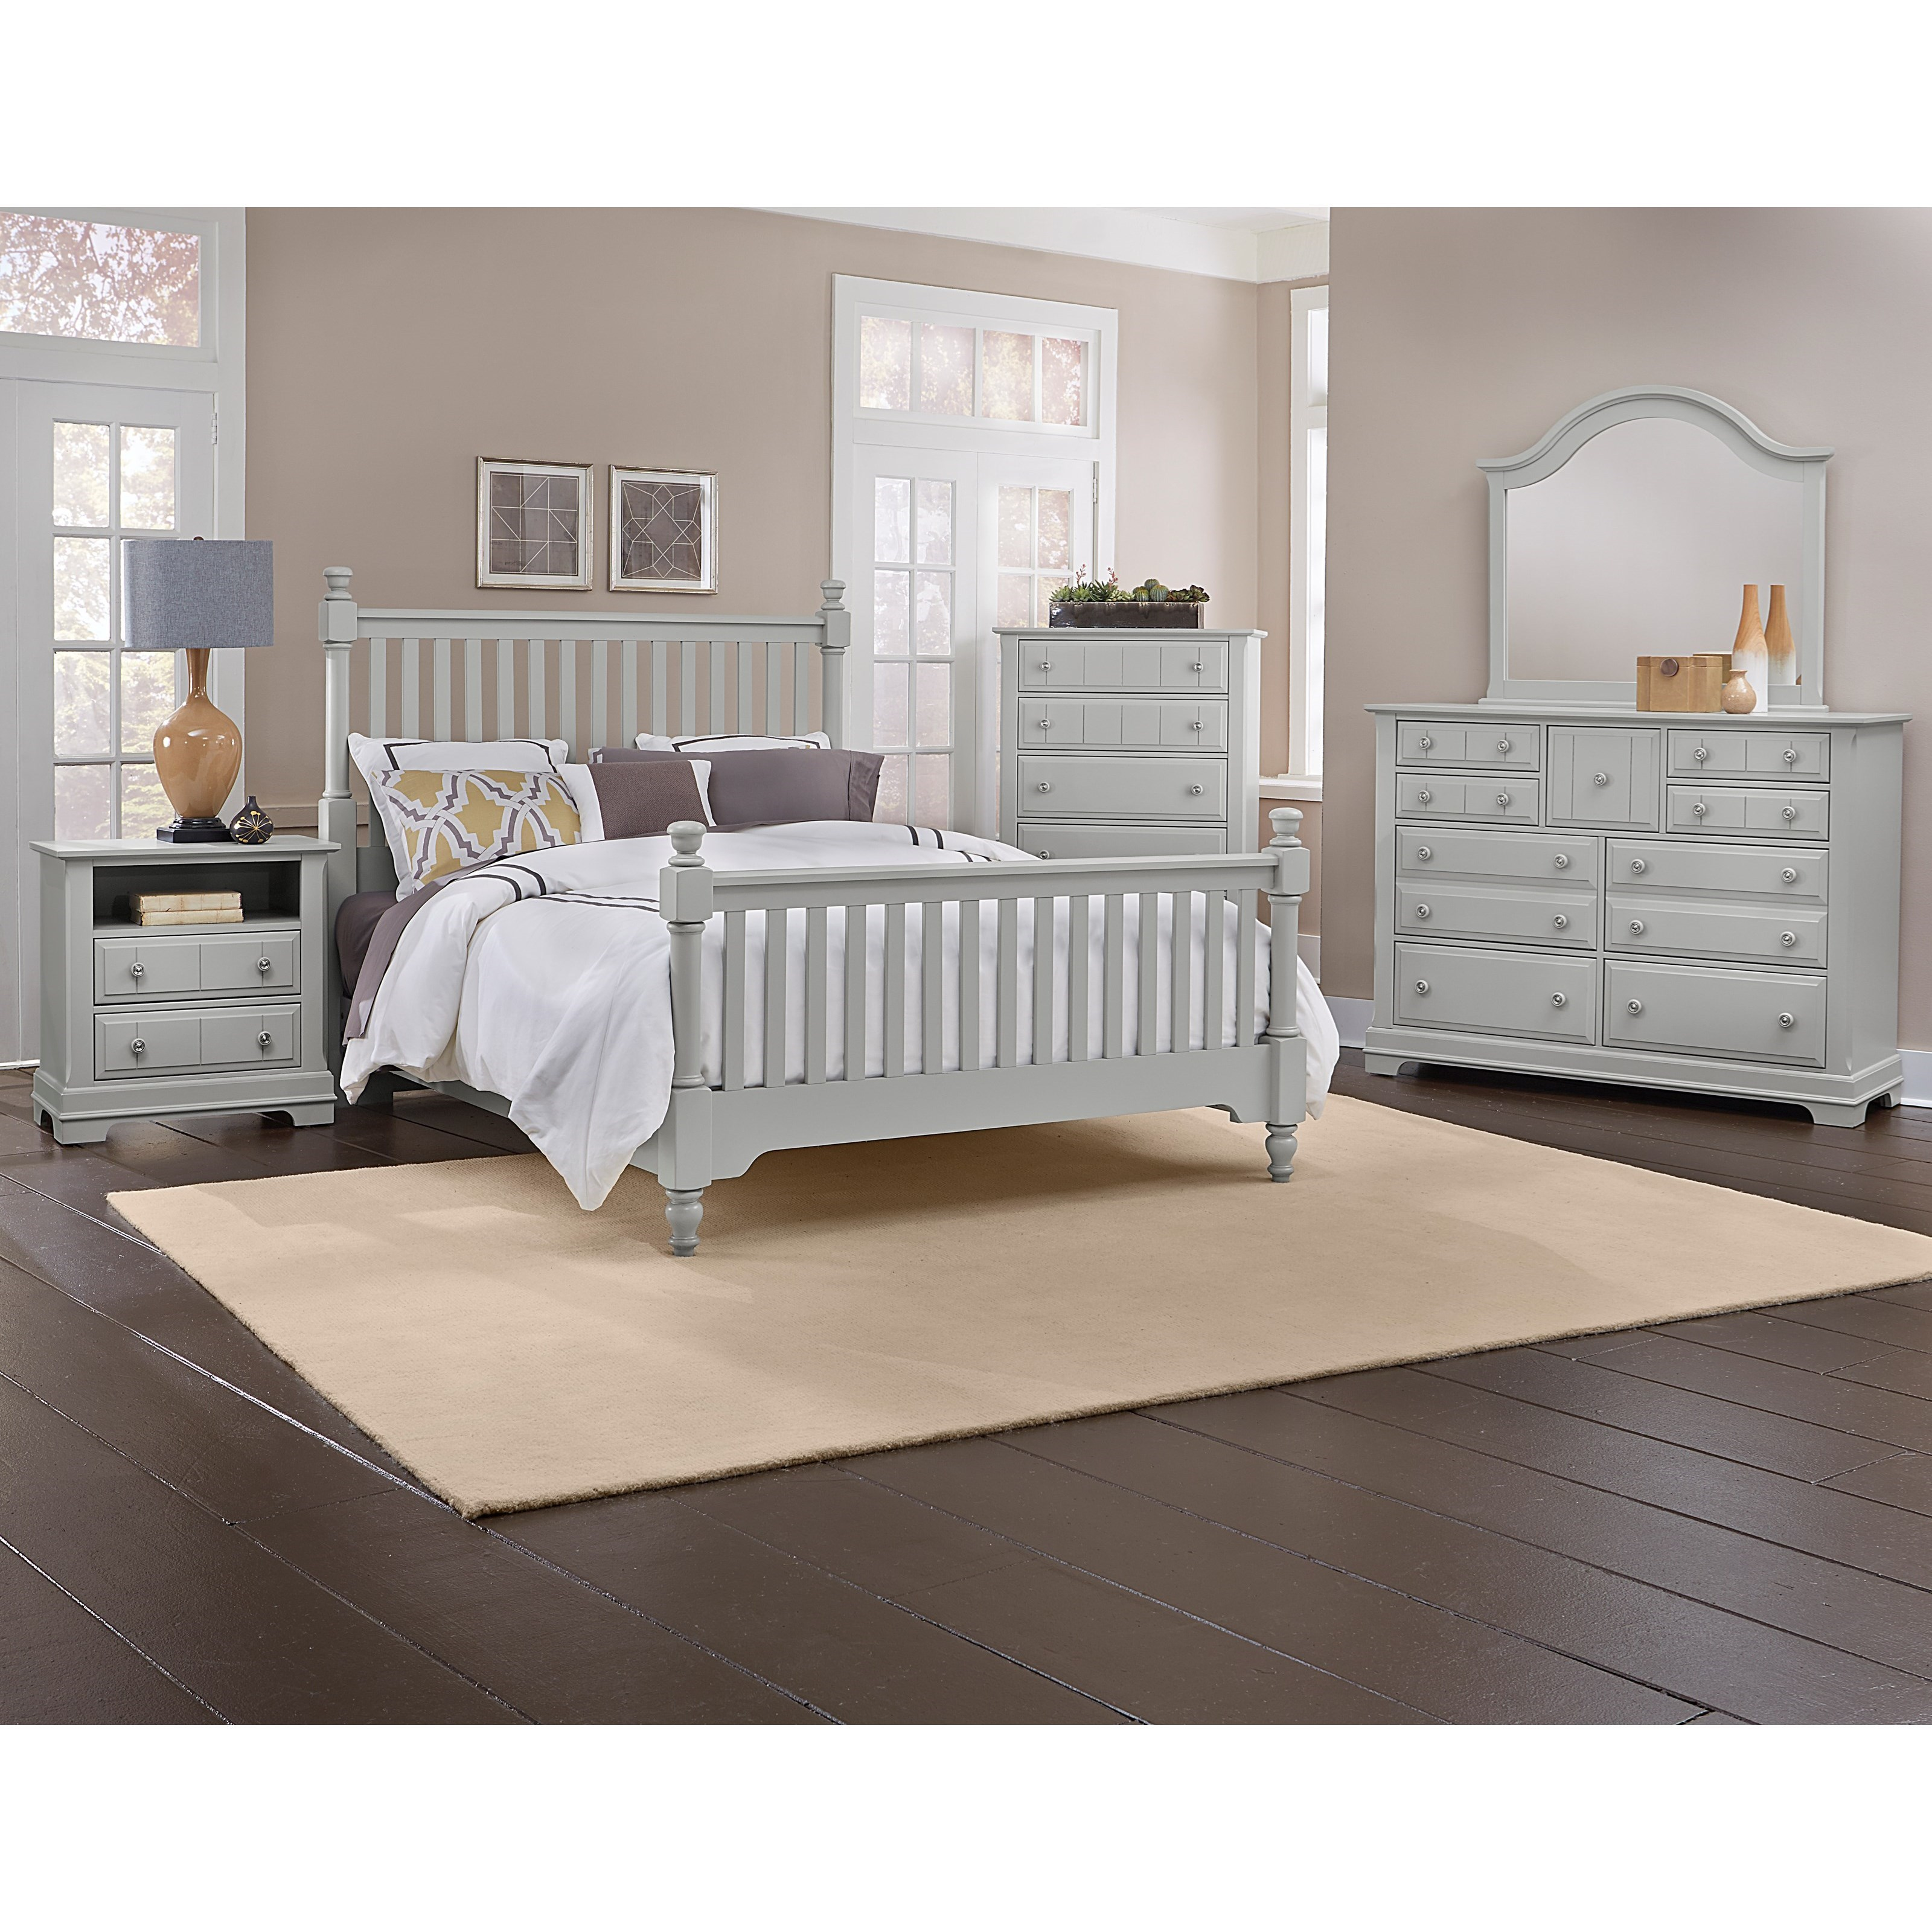 Vaughan bassett cottage california king bedroom group for Bedroom furniture groups